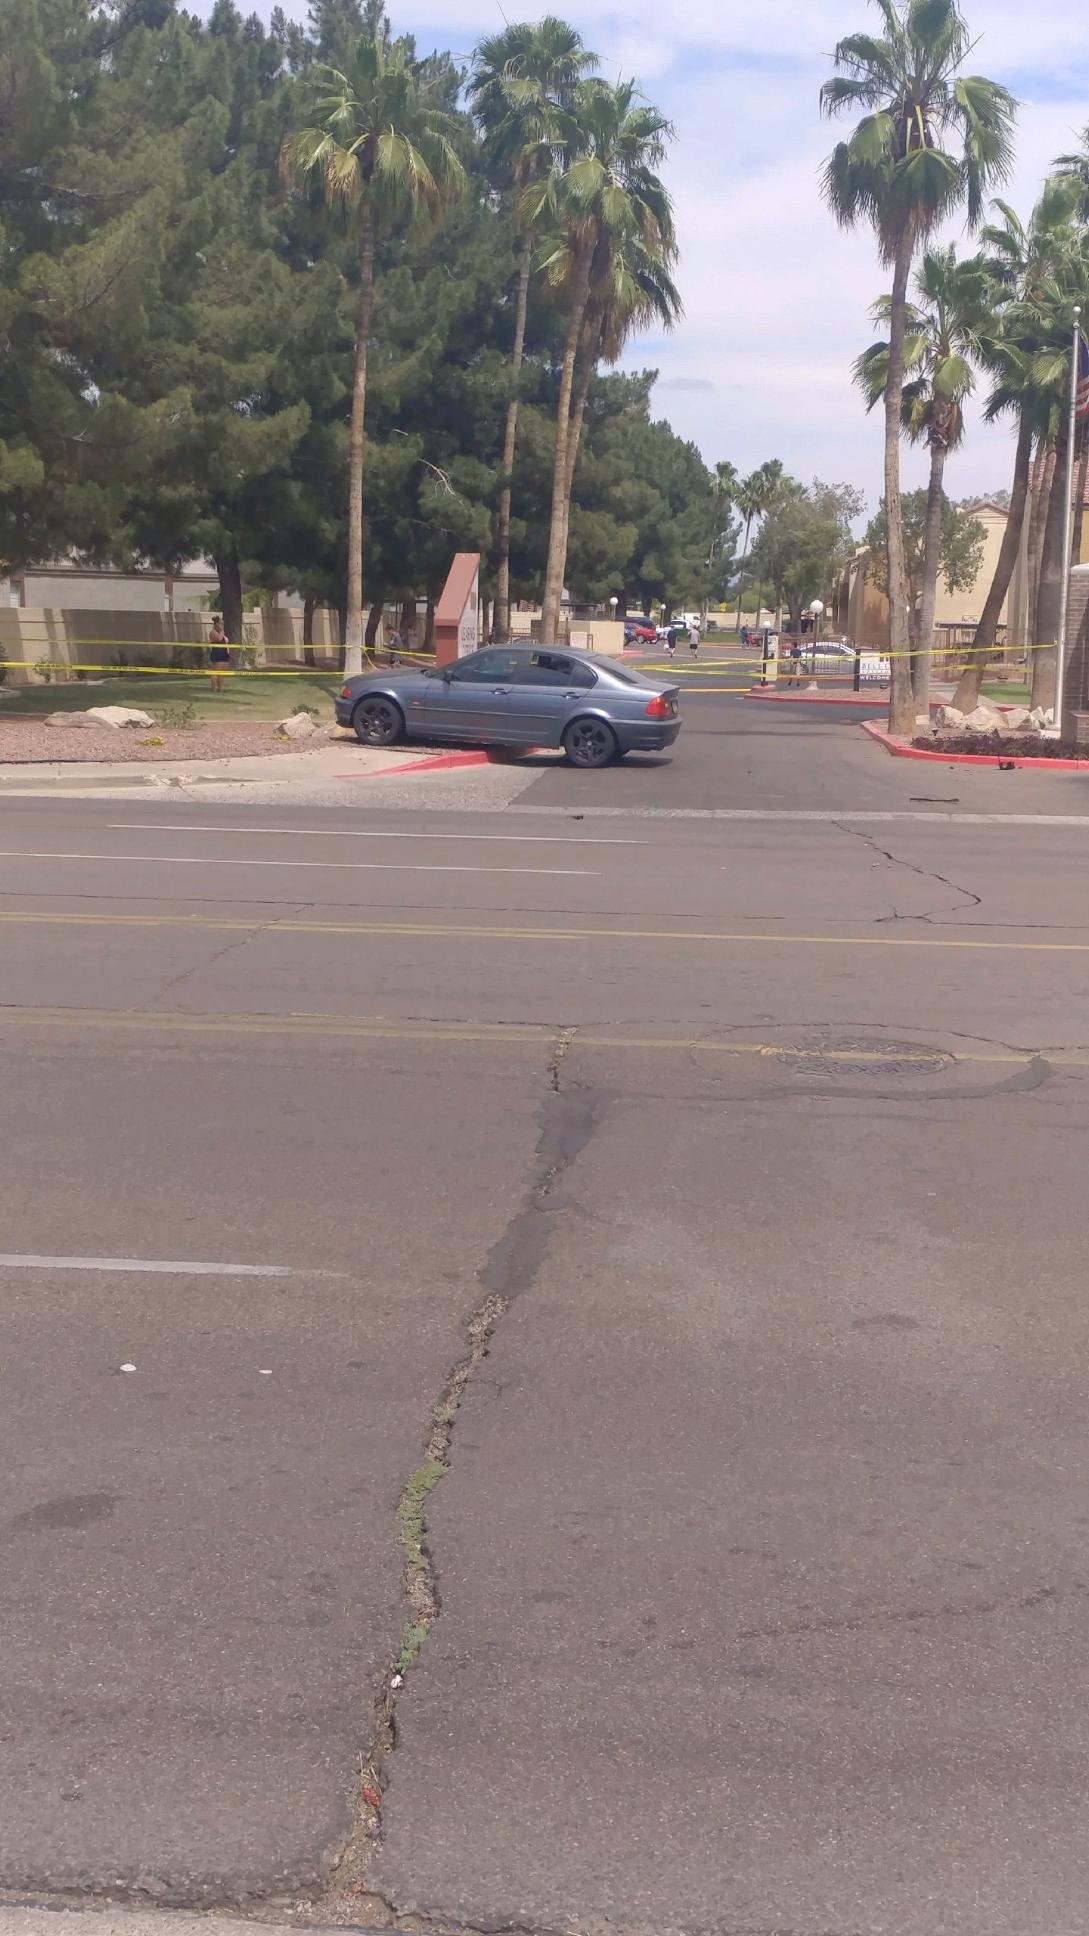 One of the vehicles involved in a wreck at 19th Ave. and Bell. (Source: Brett Thierauf)